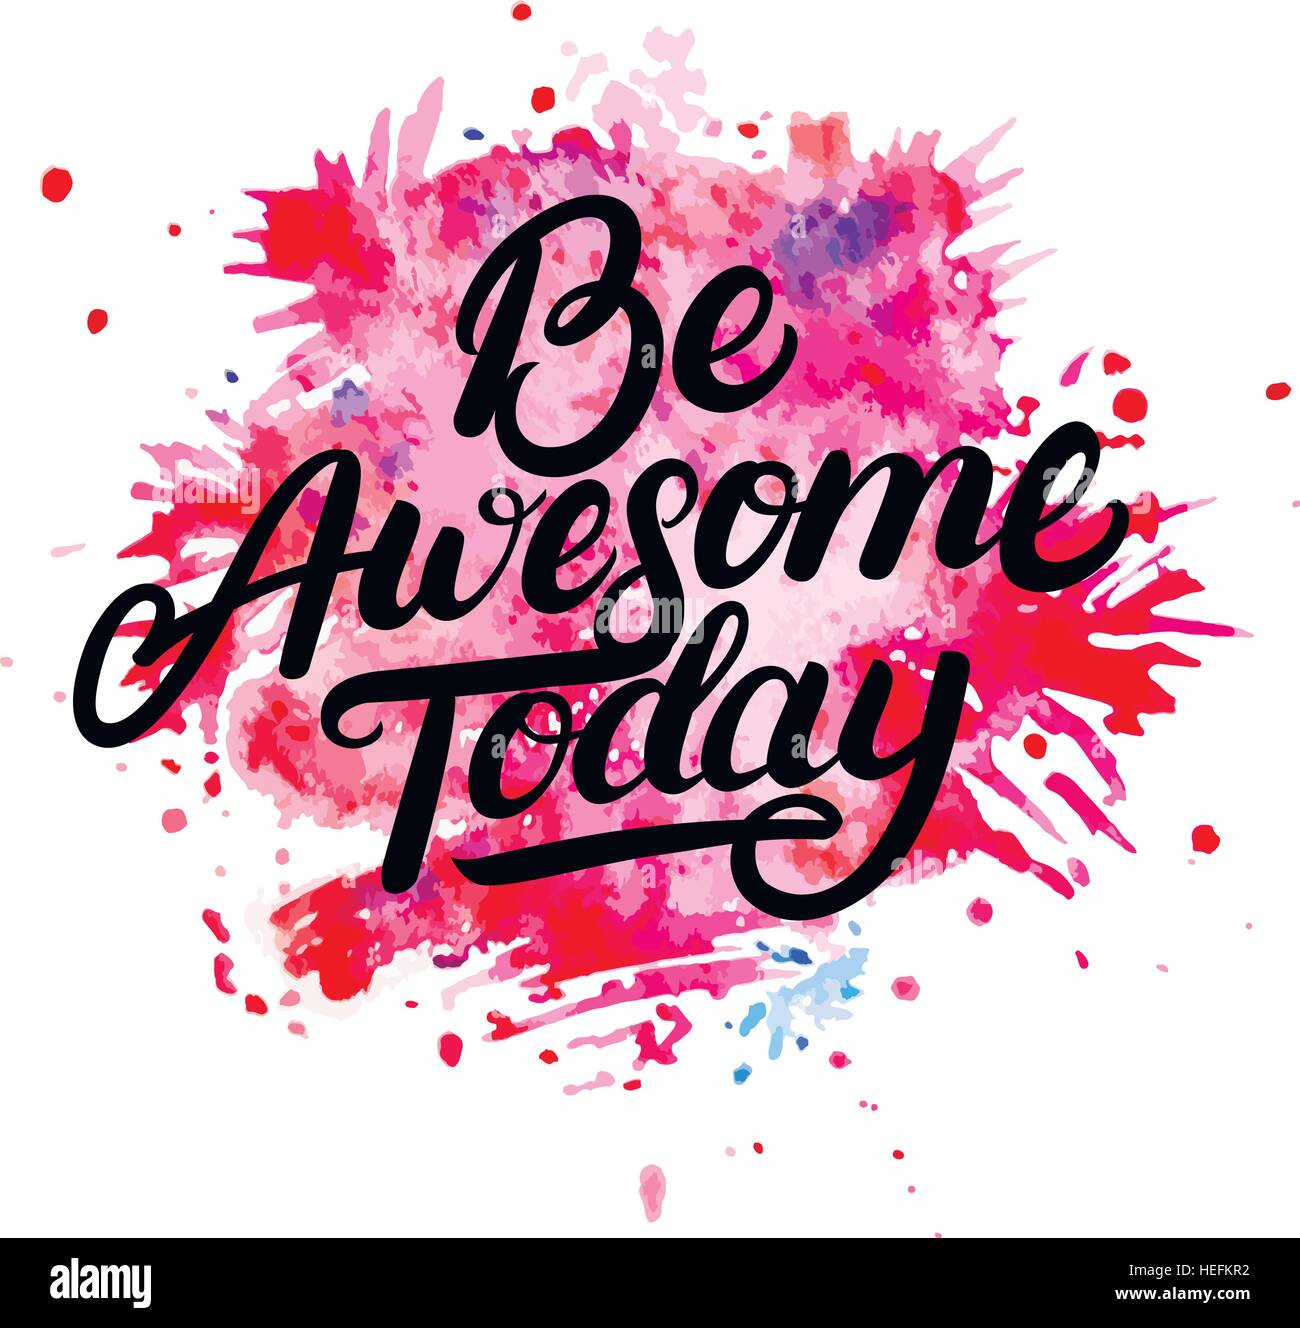 Be Awesome Today hand written lettering on watercolor